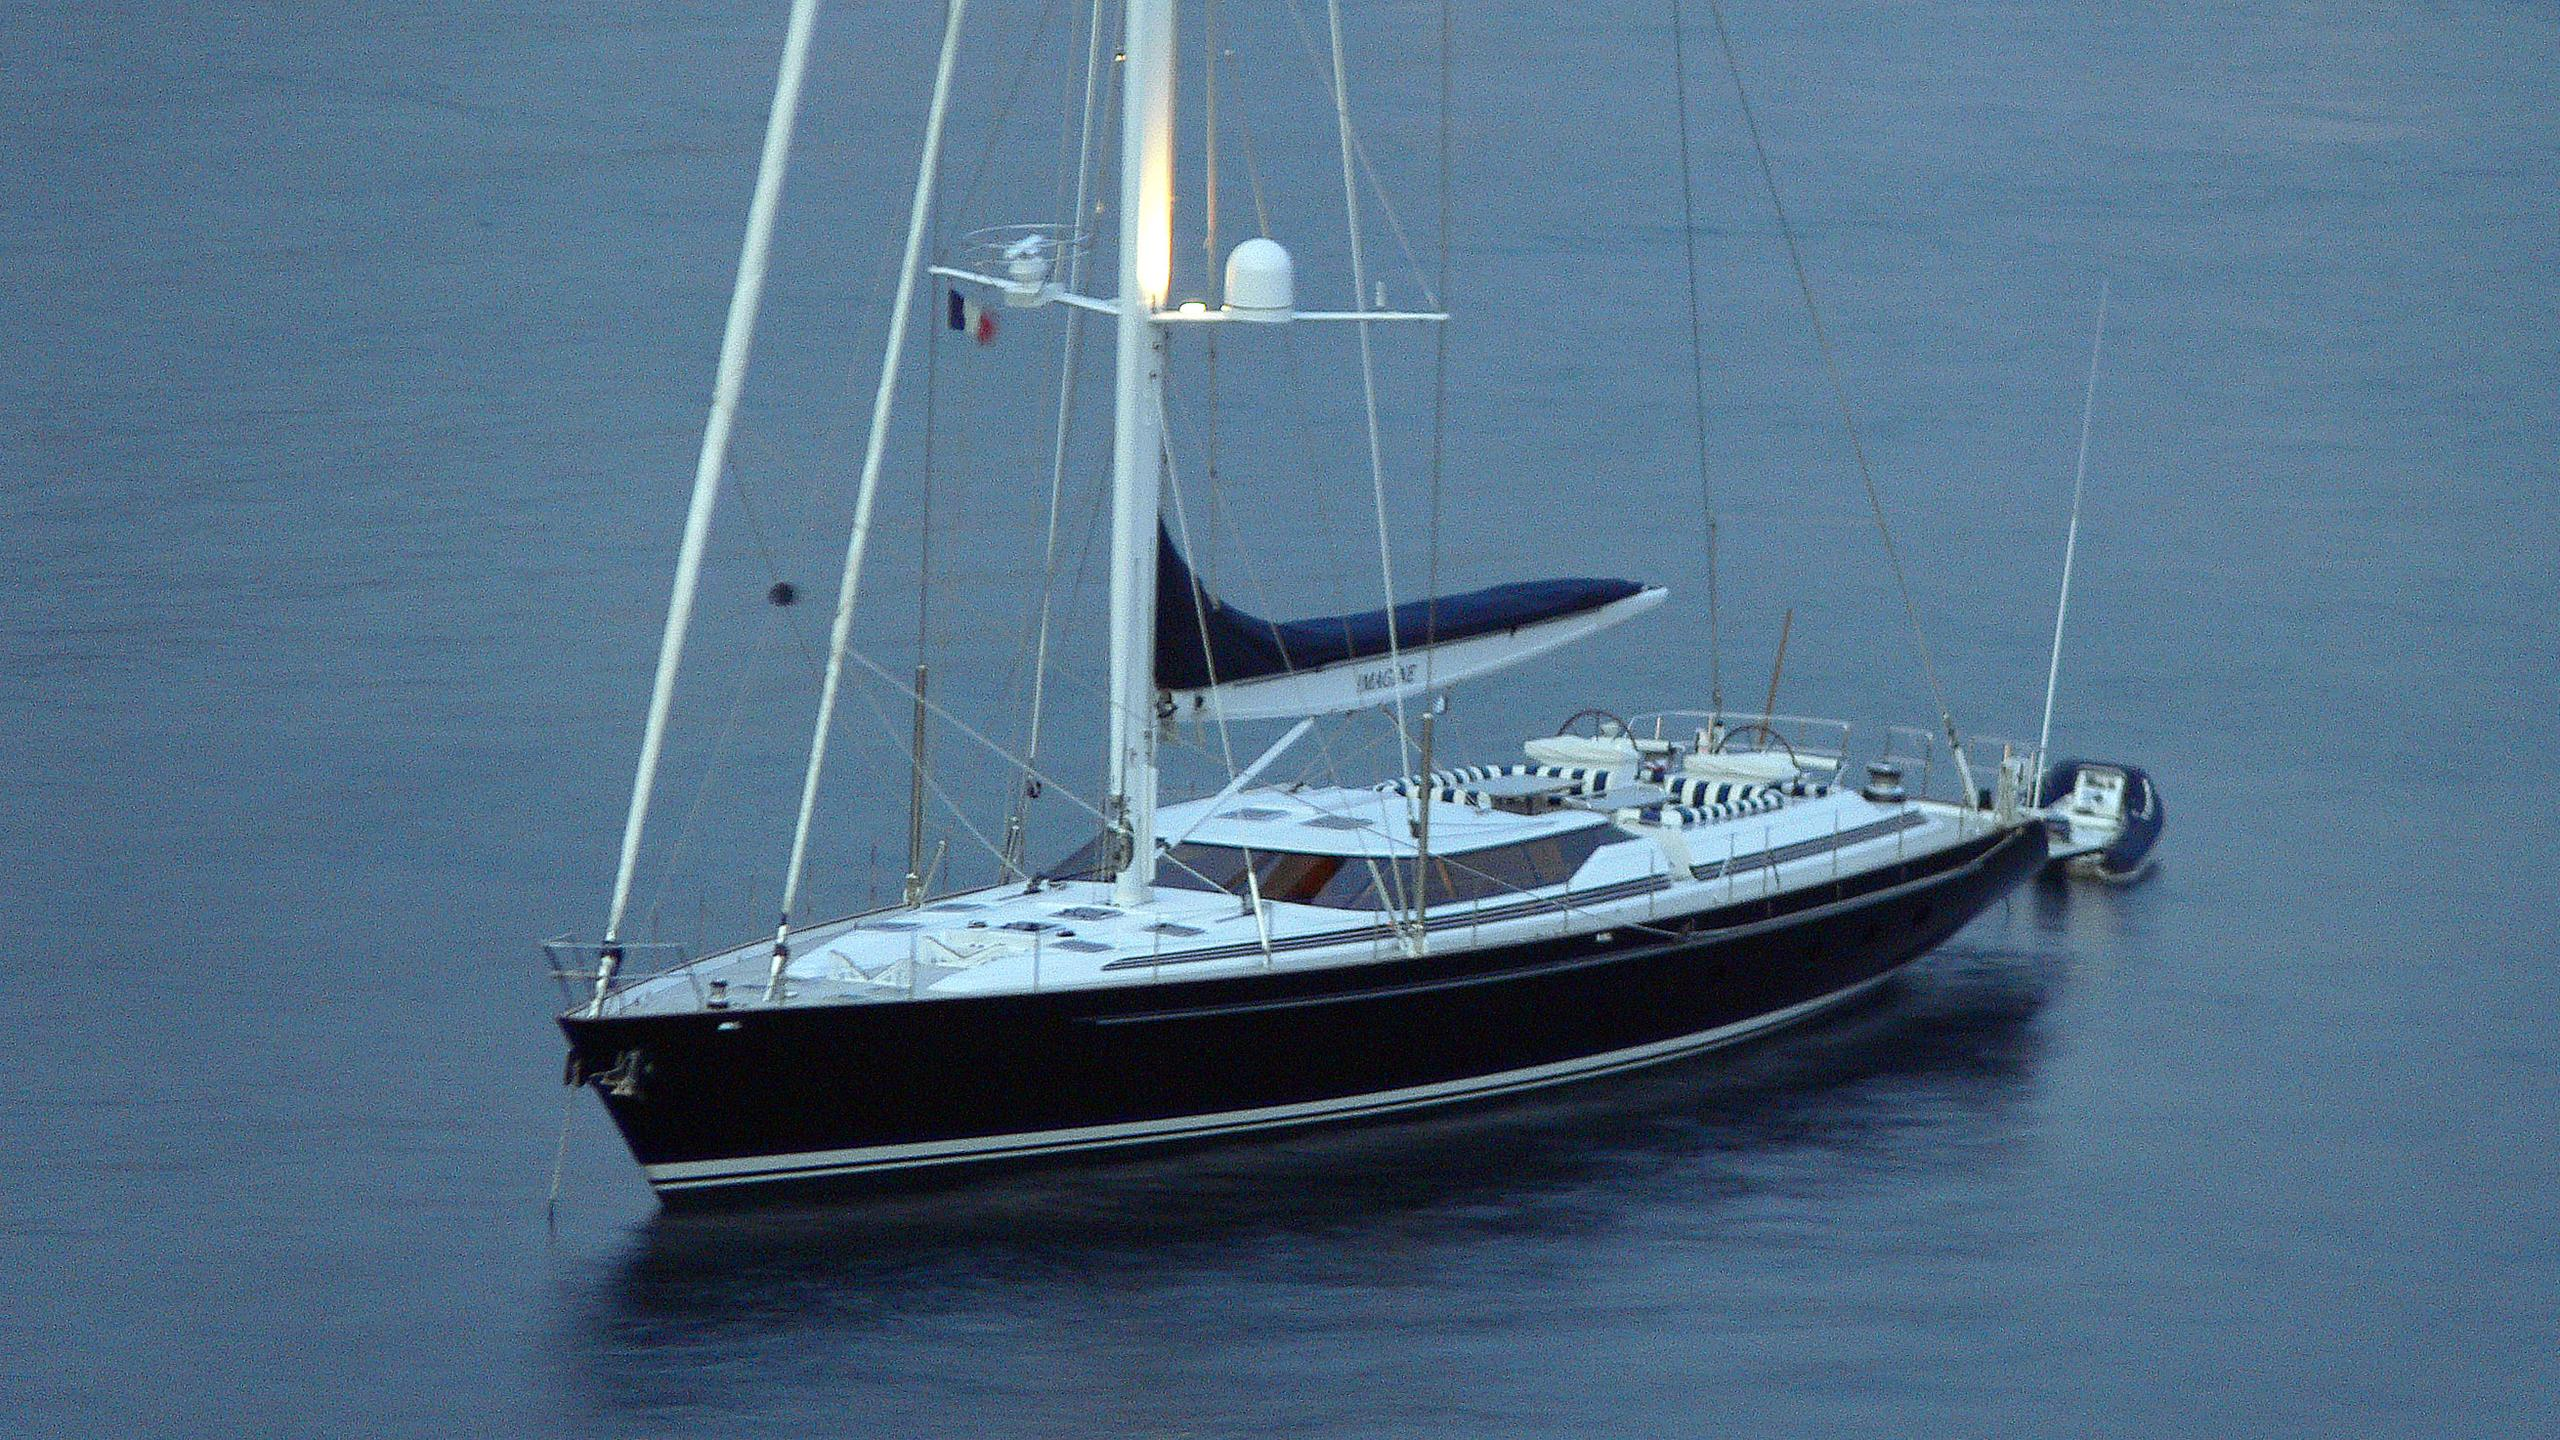 imagine-sailing-yacht-alloy-1993-34m-half-profile-by-night